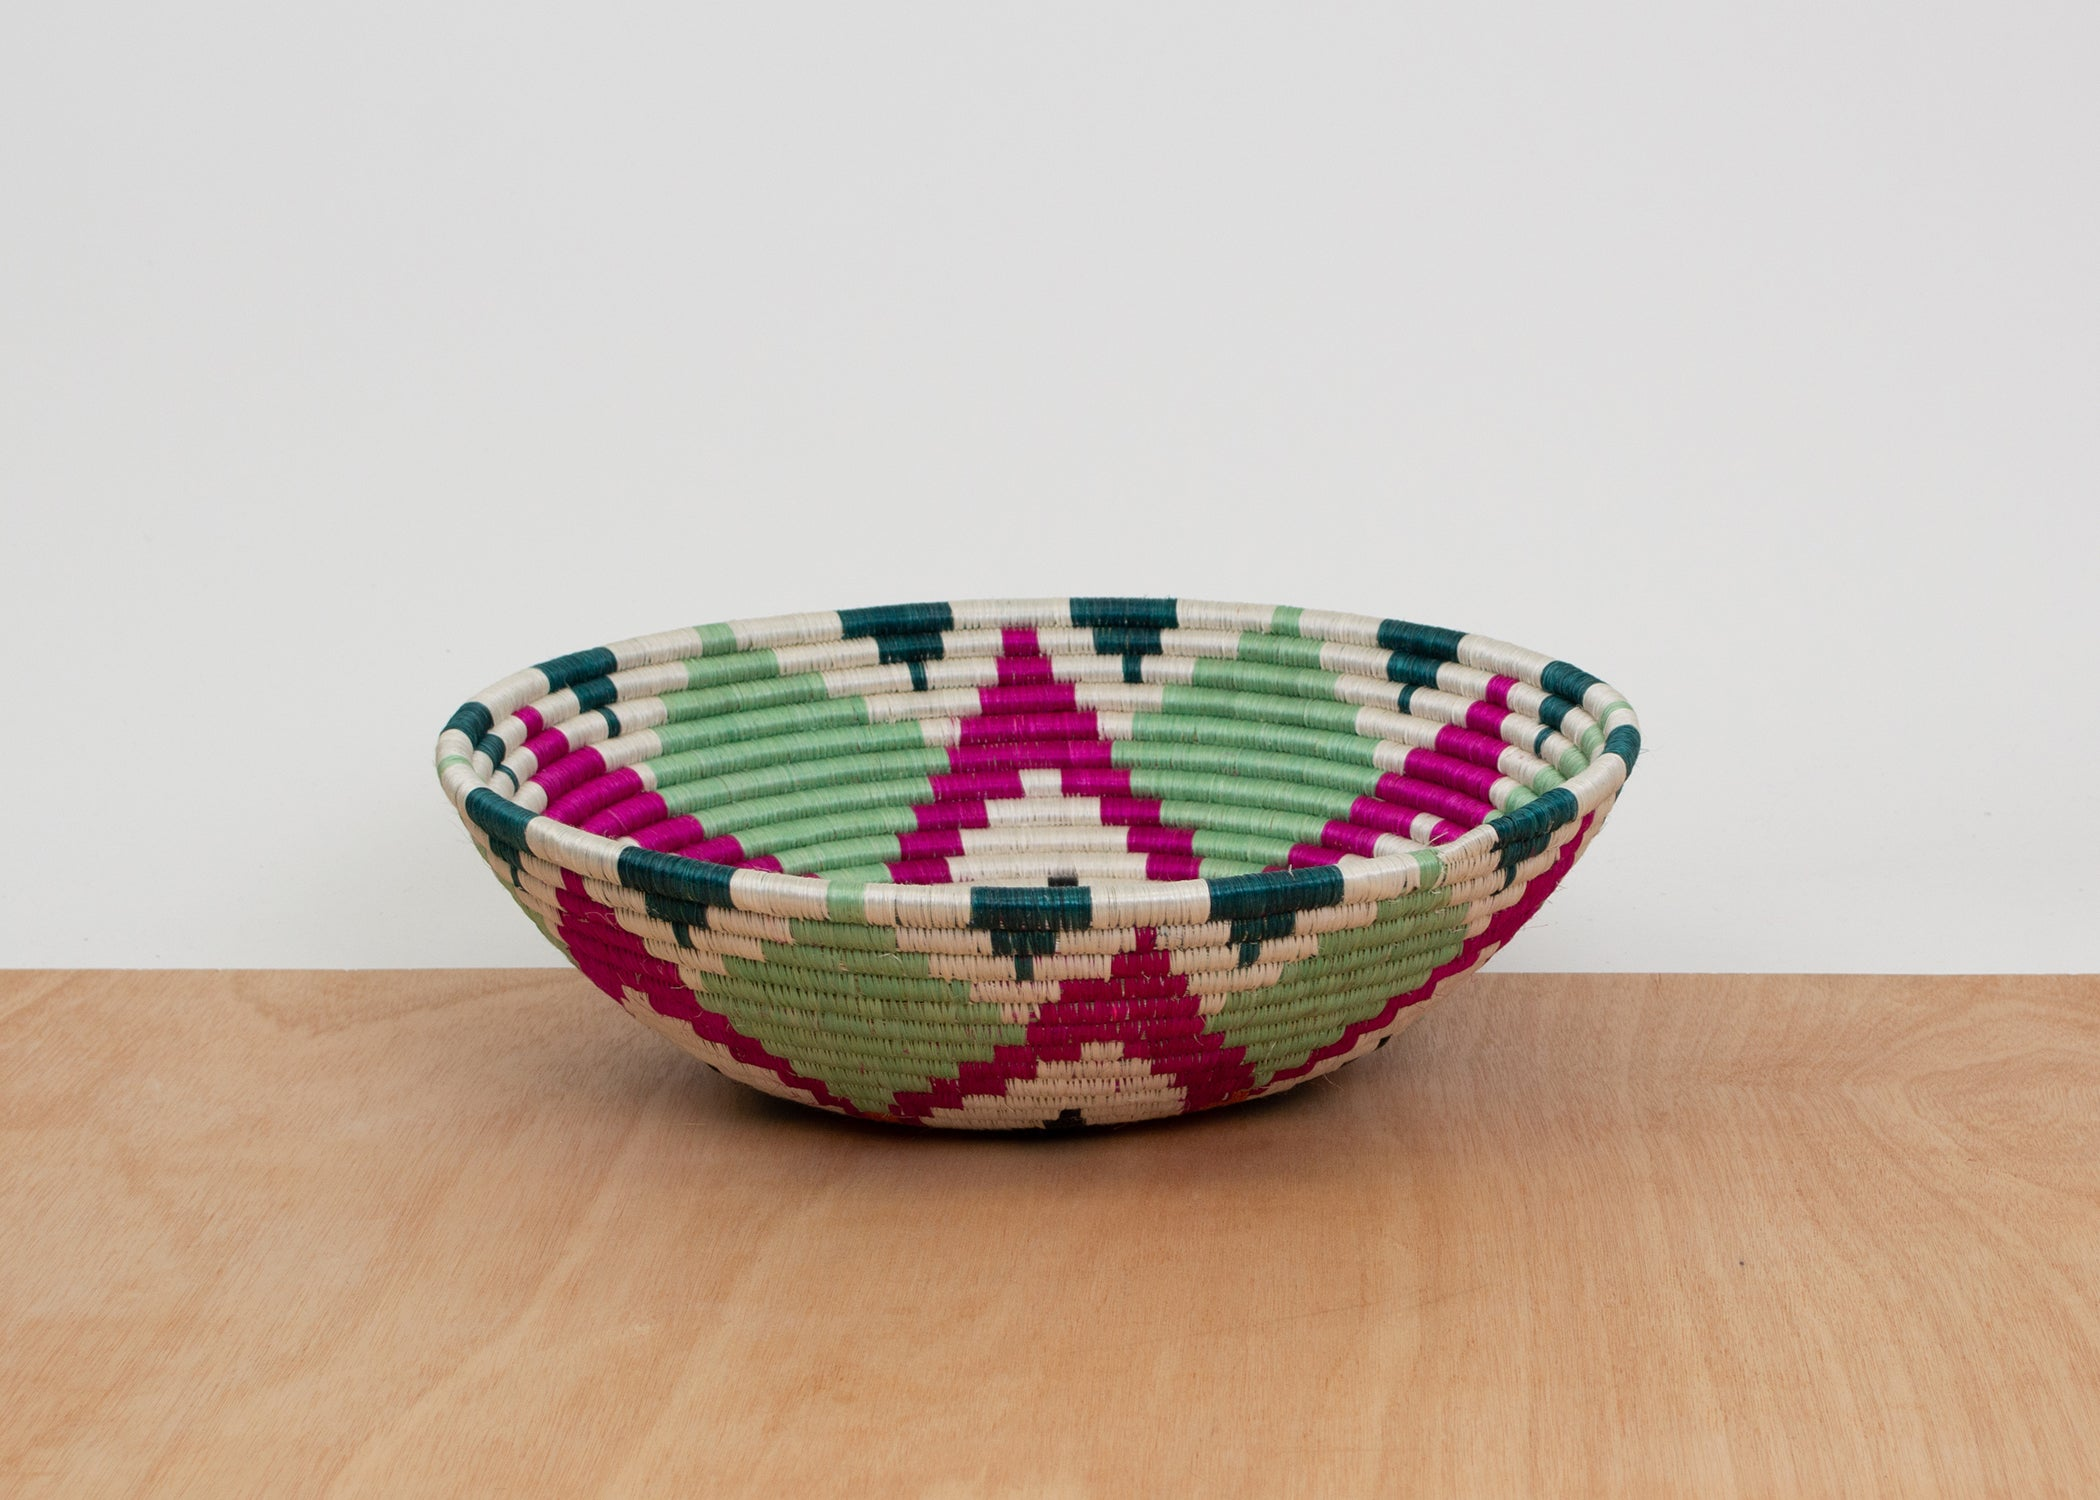 Jumbo Vivid Viola Ikaze Bowl - KAZI - Artisan made high quality home decor and wall art